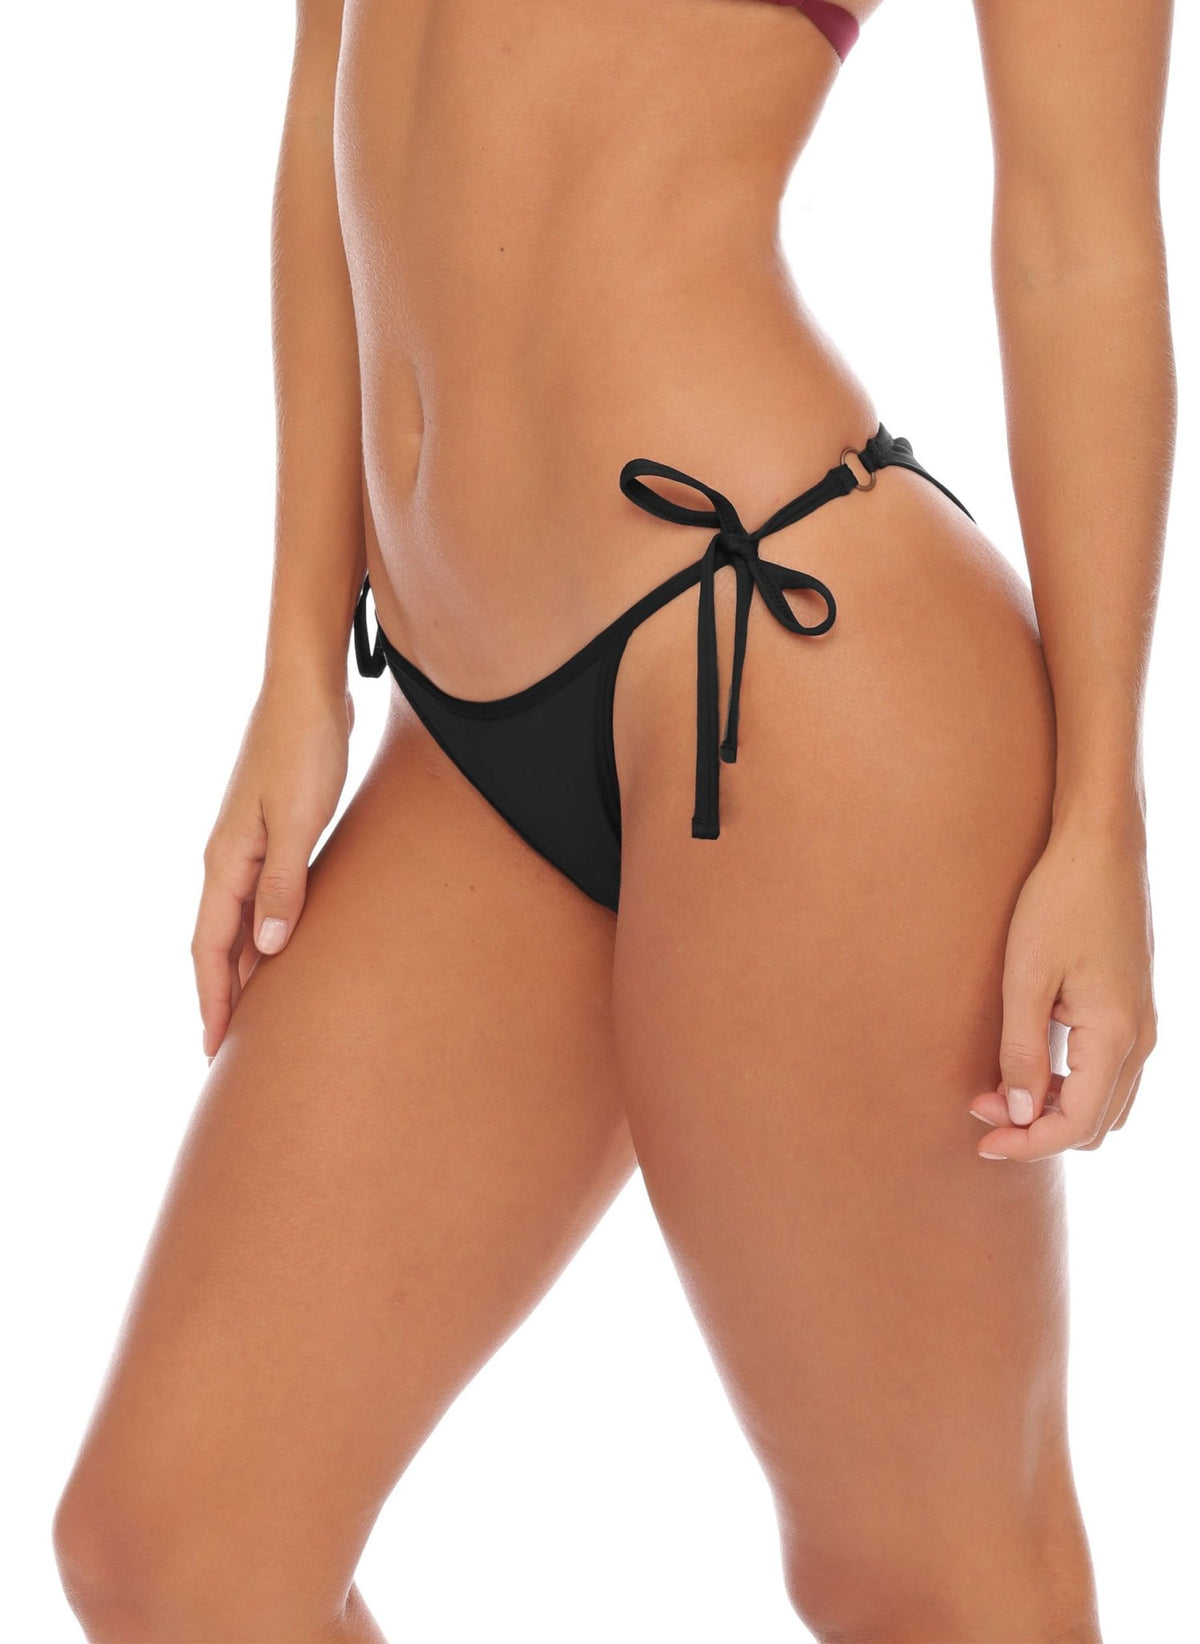 Jenna Side Tie Bottom - Semi-Cheeky - Black - Salty Mermaid Swim